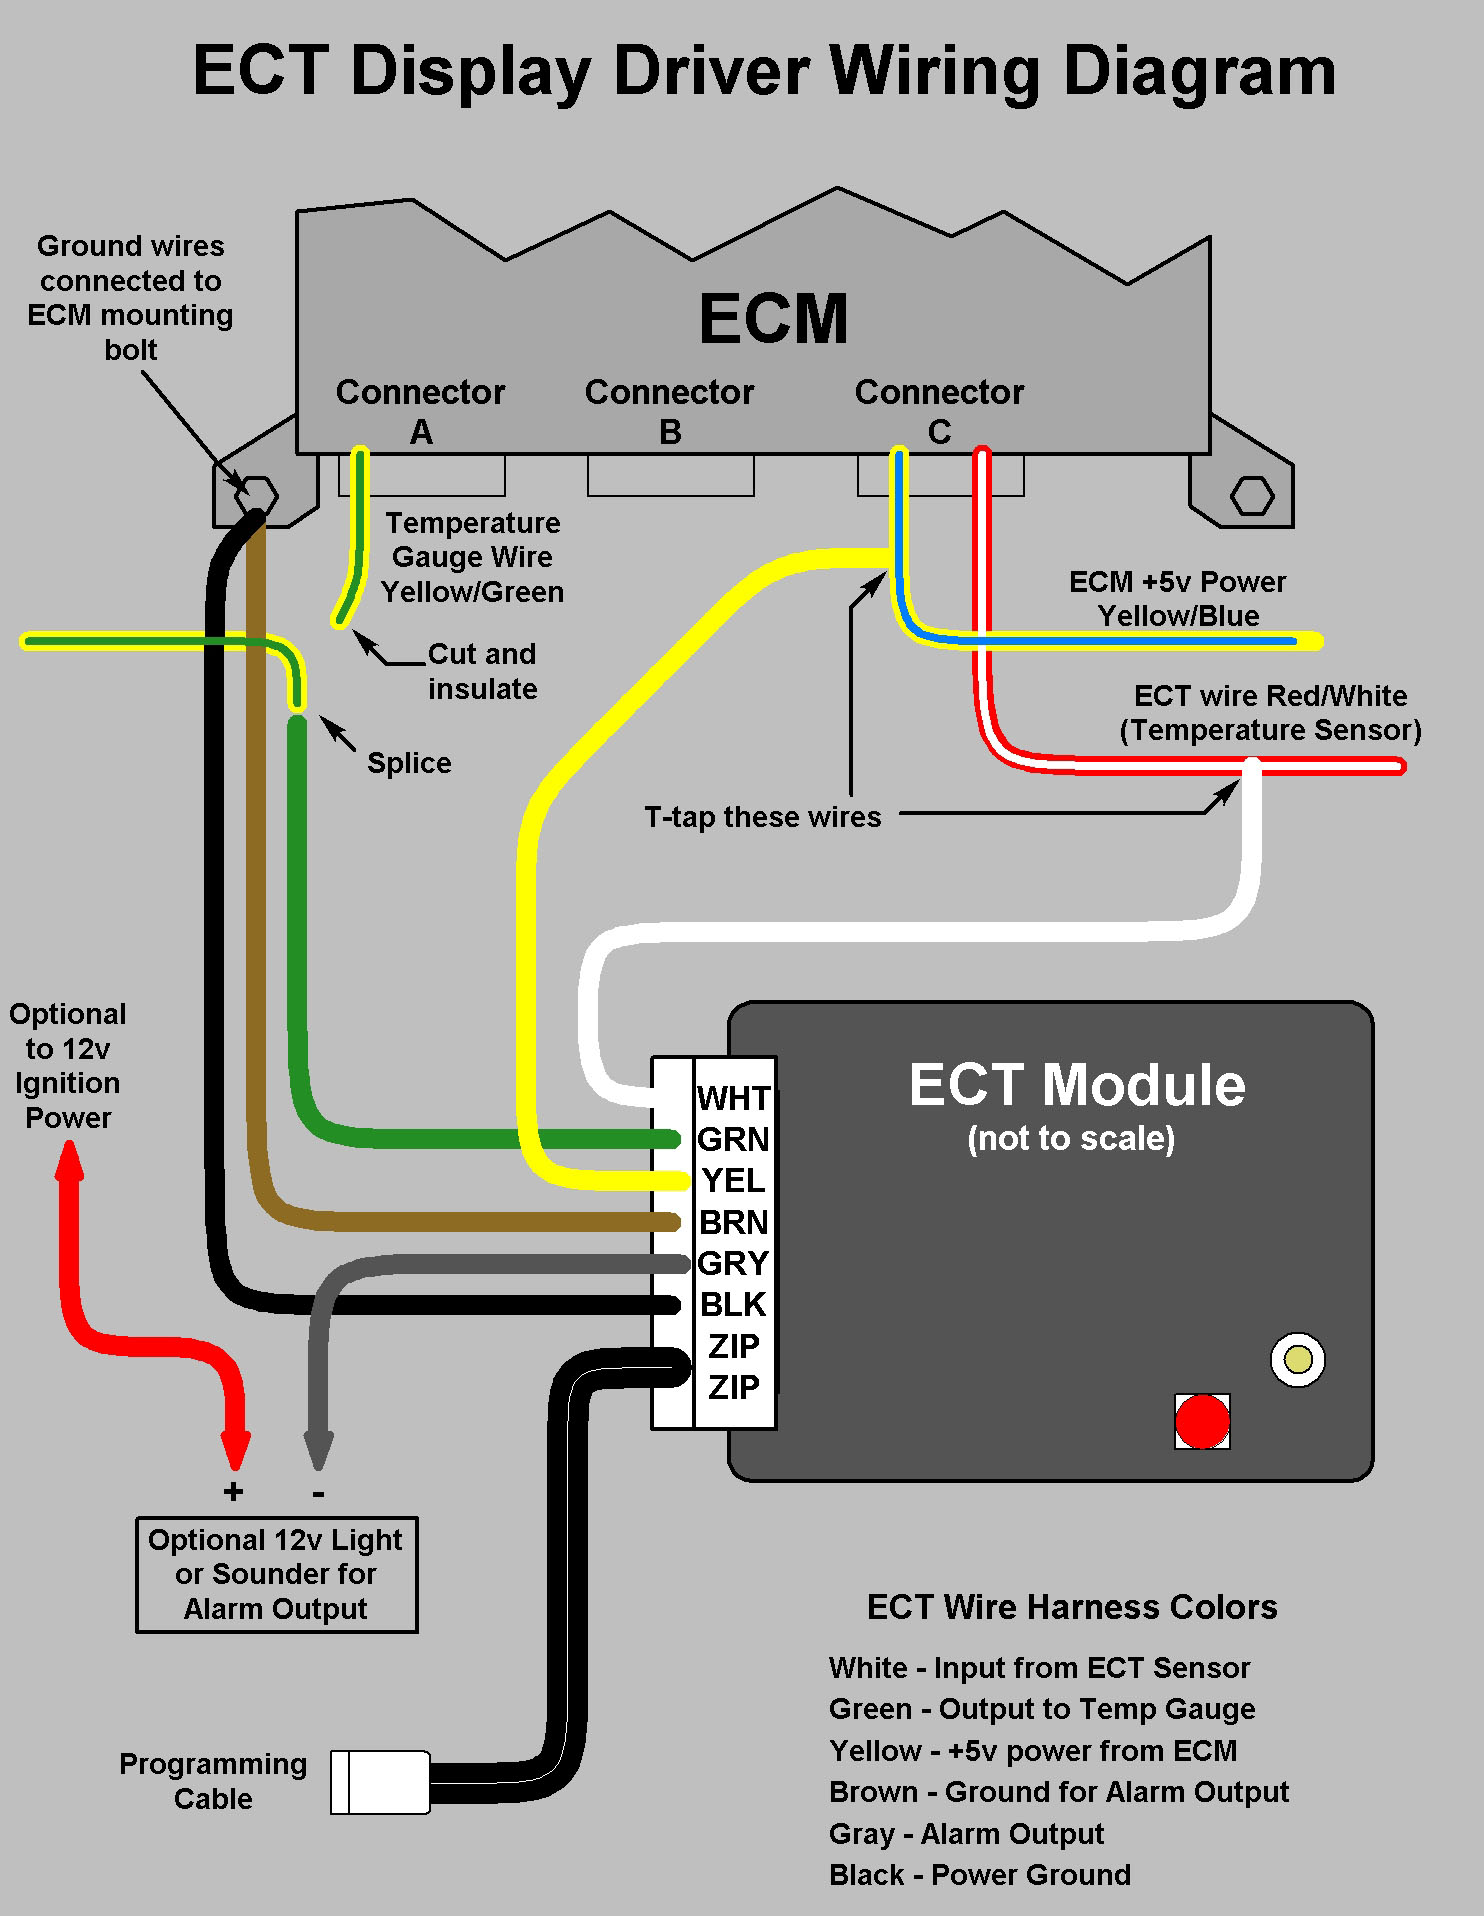 radio wiring diagram integra. radio. free wiring diagrams, Wiring diagram